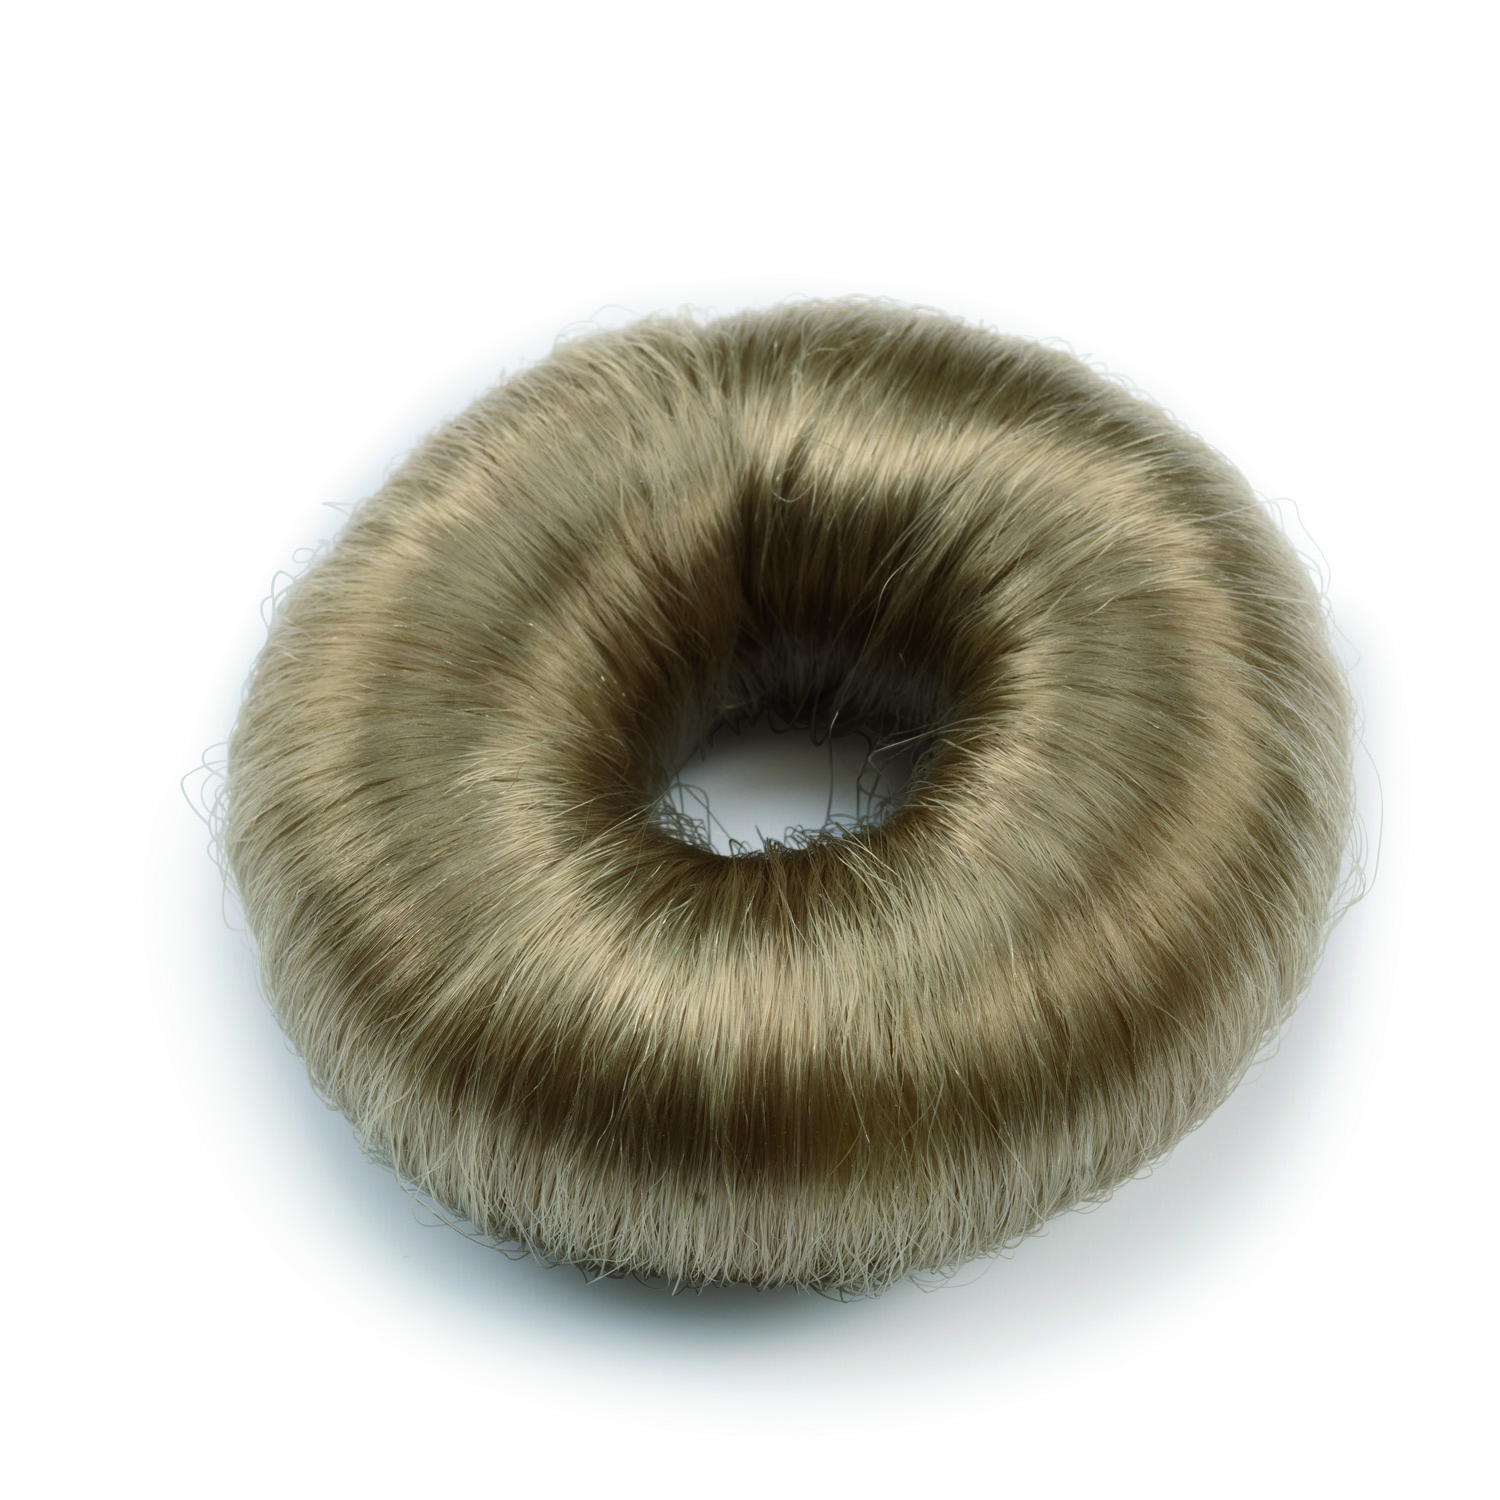 Image of Hår DONUT small blond